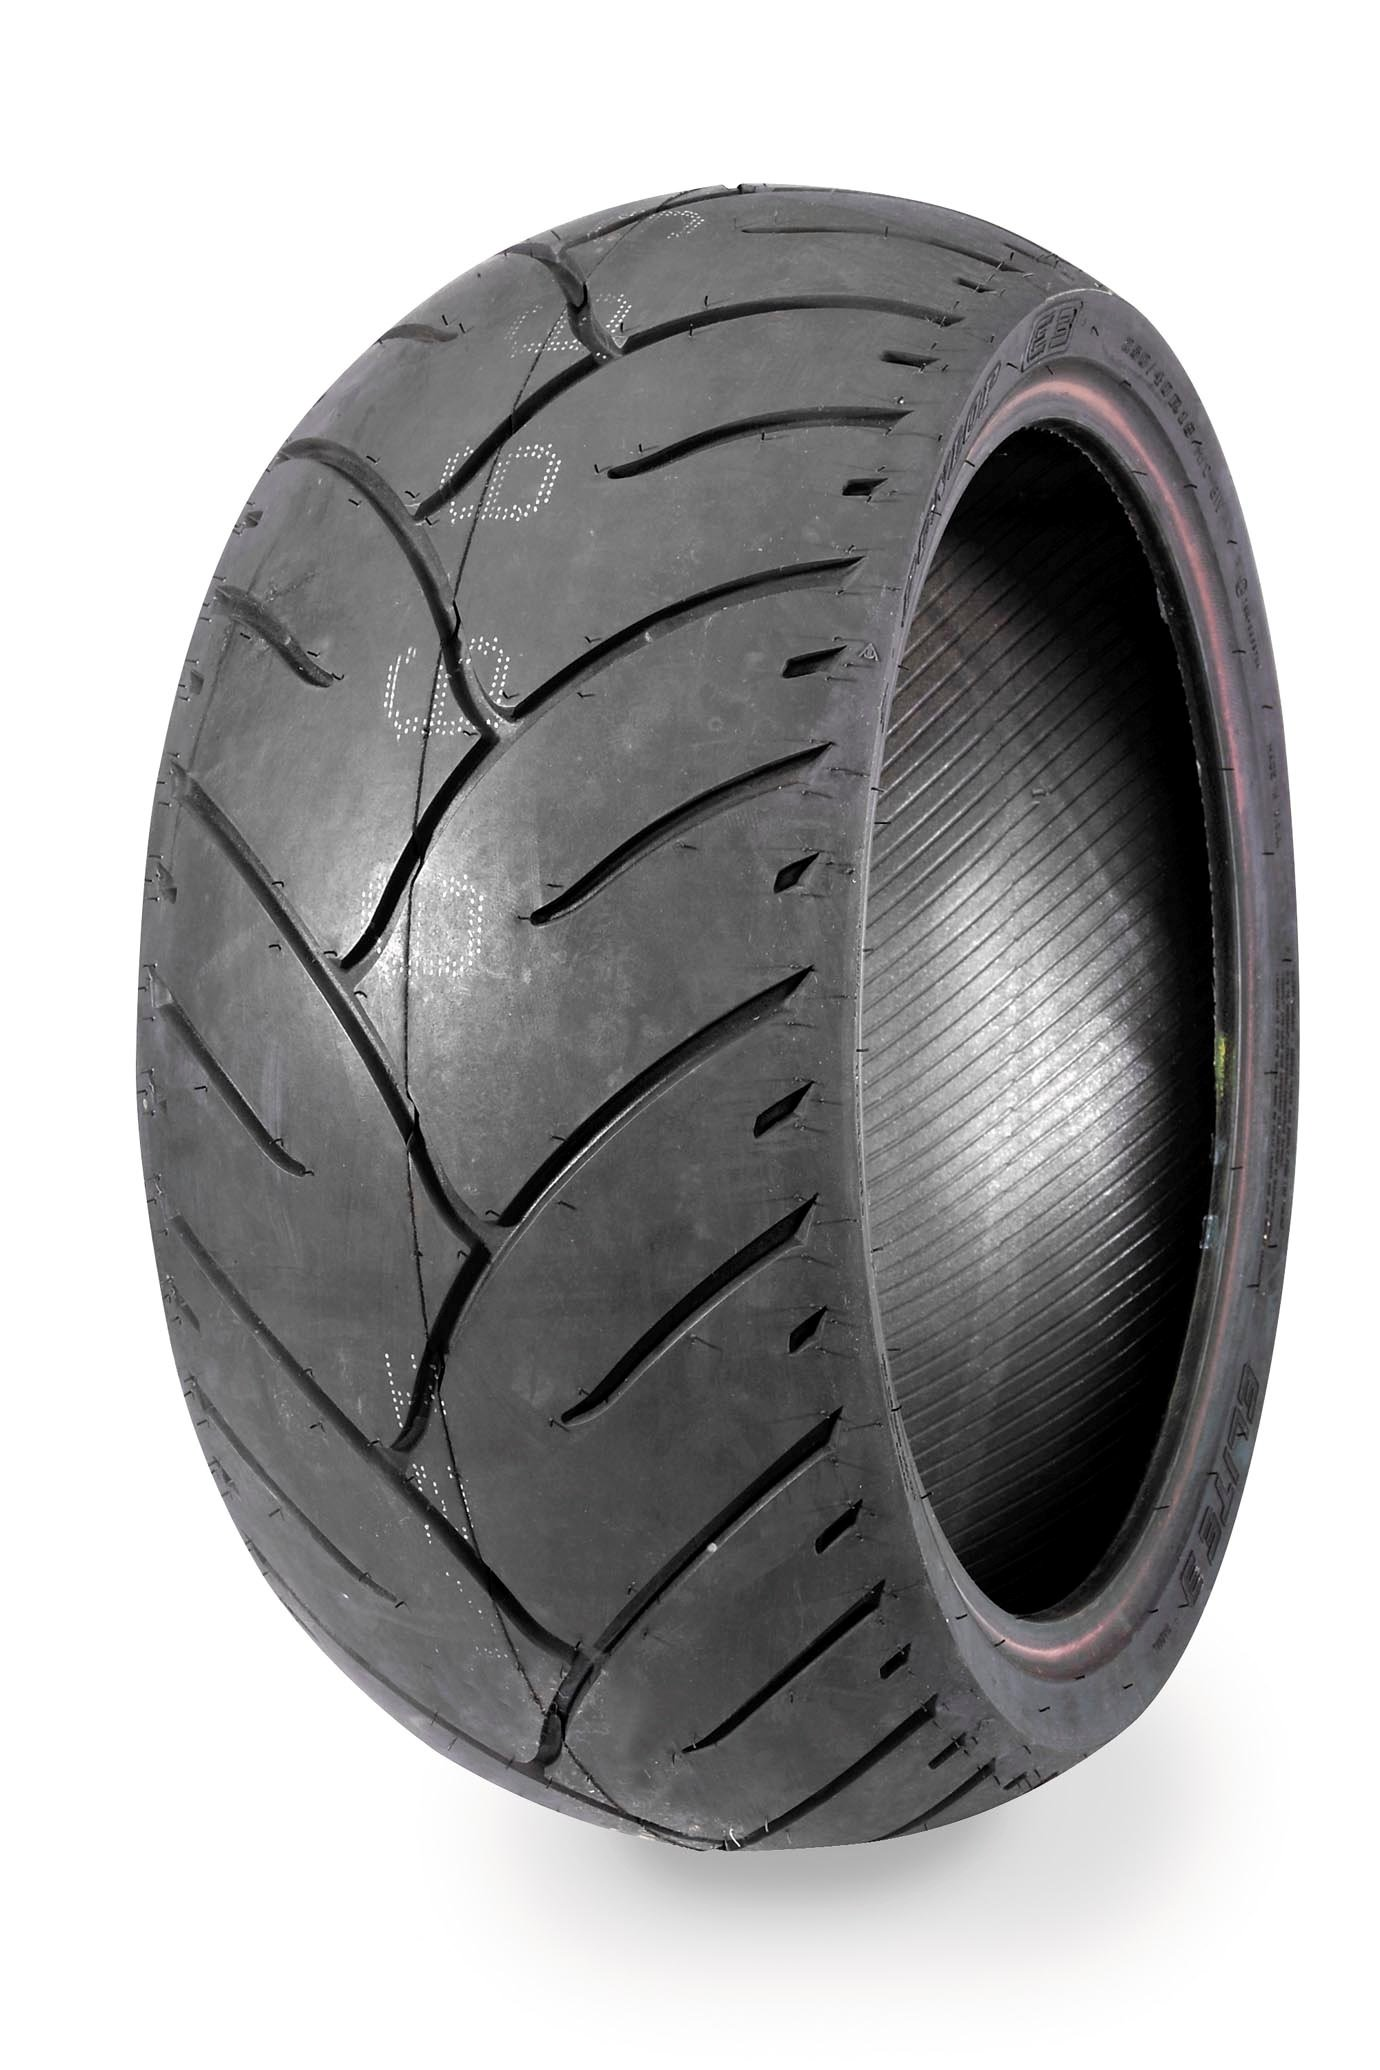 Dunlop Elite 3 250/40R18 Rear Tire 45091292